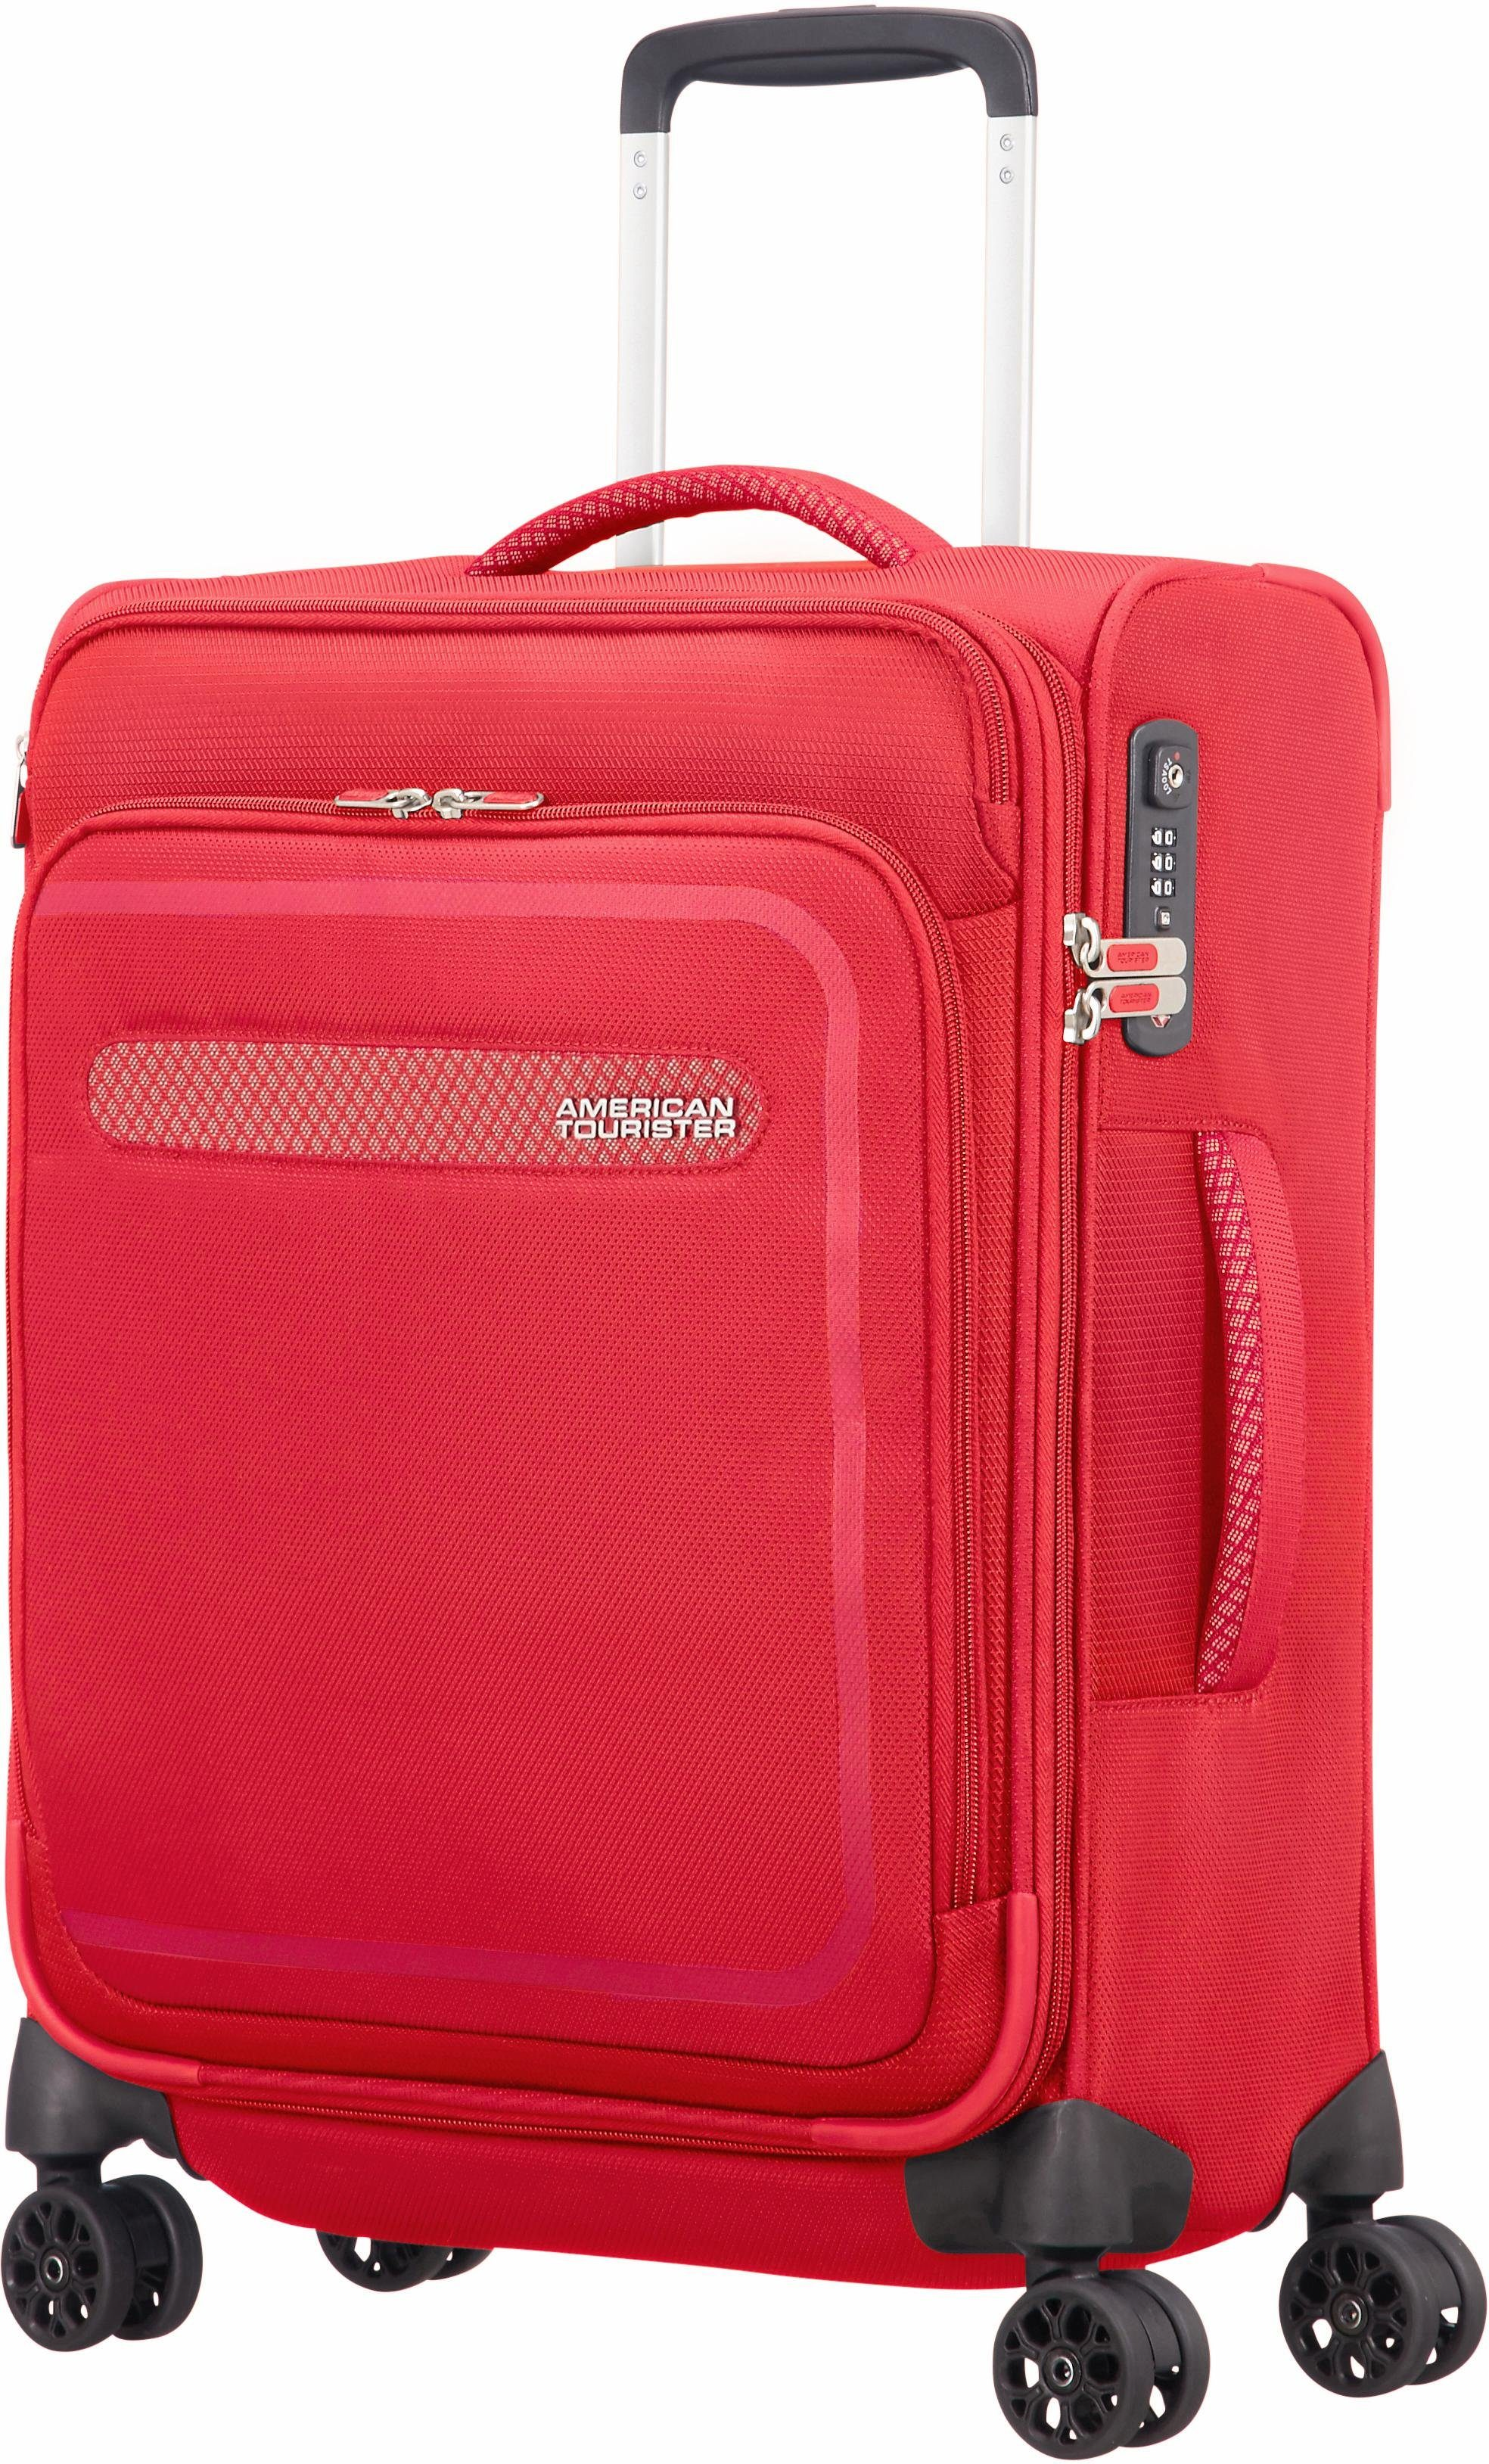 Airbeat 2-Rollen Trolley rot 55 cm American Tourister JqHSsV6